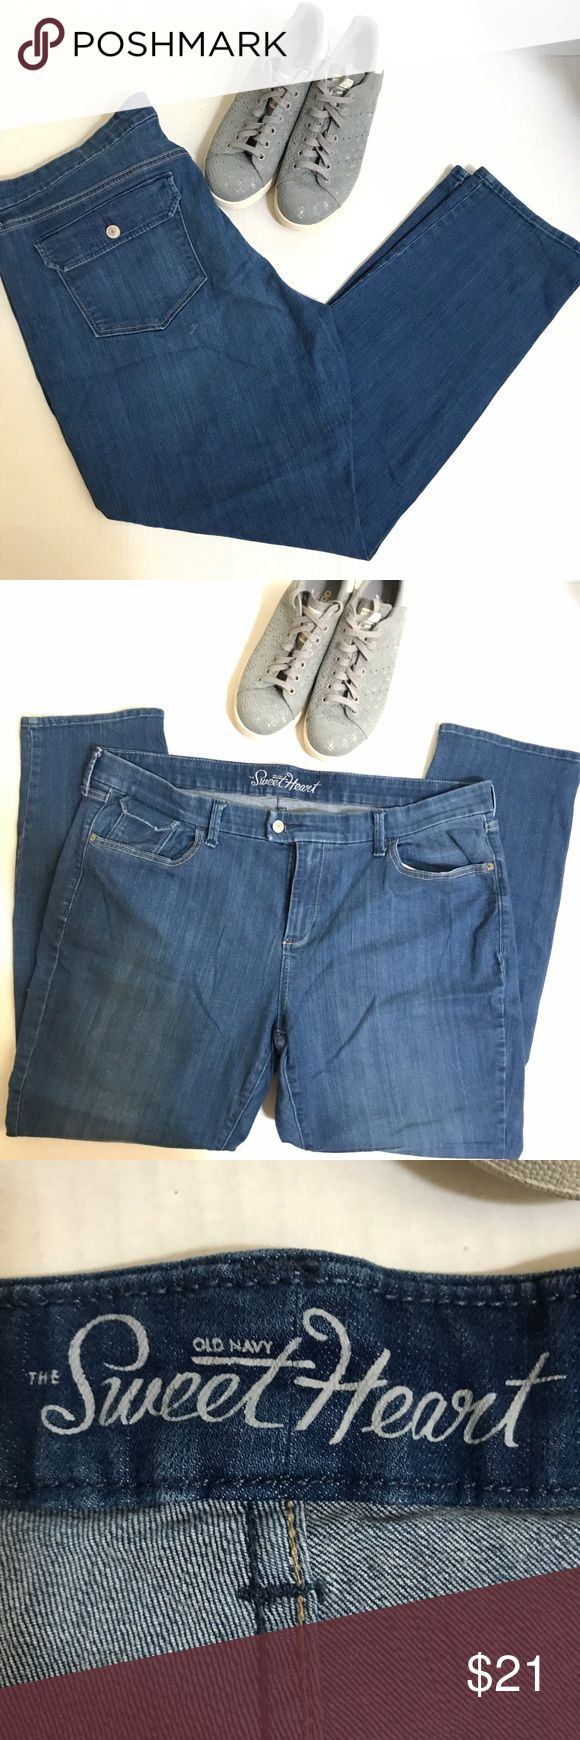 """Old Navy """"The Sweetheart"""" jeans, Sz. 18 For curvy shapes with a defined waist, with stretch to hug your curves!  EUC - no rips, stains or fading!  Waist measures 21"""" across the front flat laid; inseam measures 31""""; and rise is 11"""".  JP000111110817 Old Navy Jeans Straight Leg"""